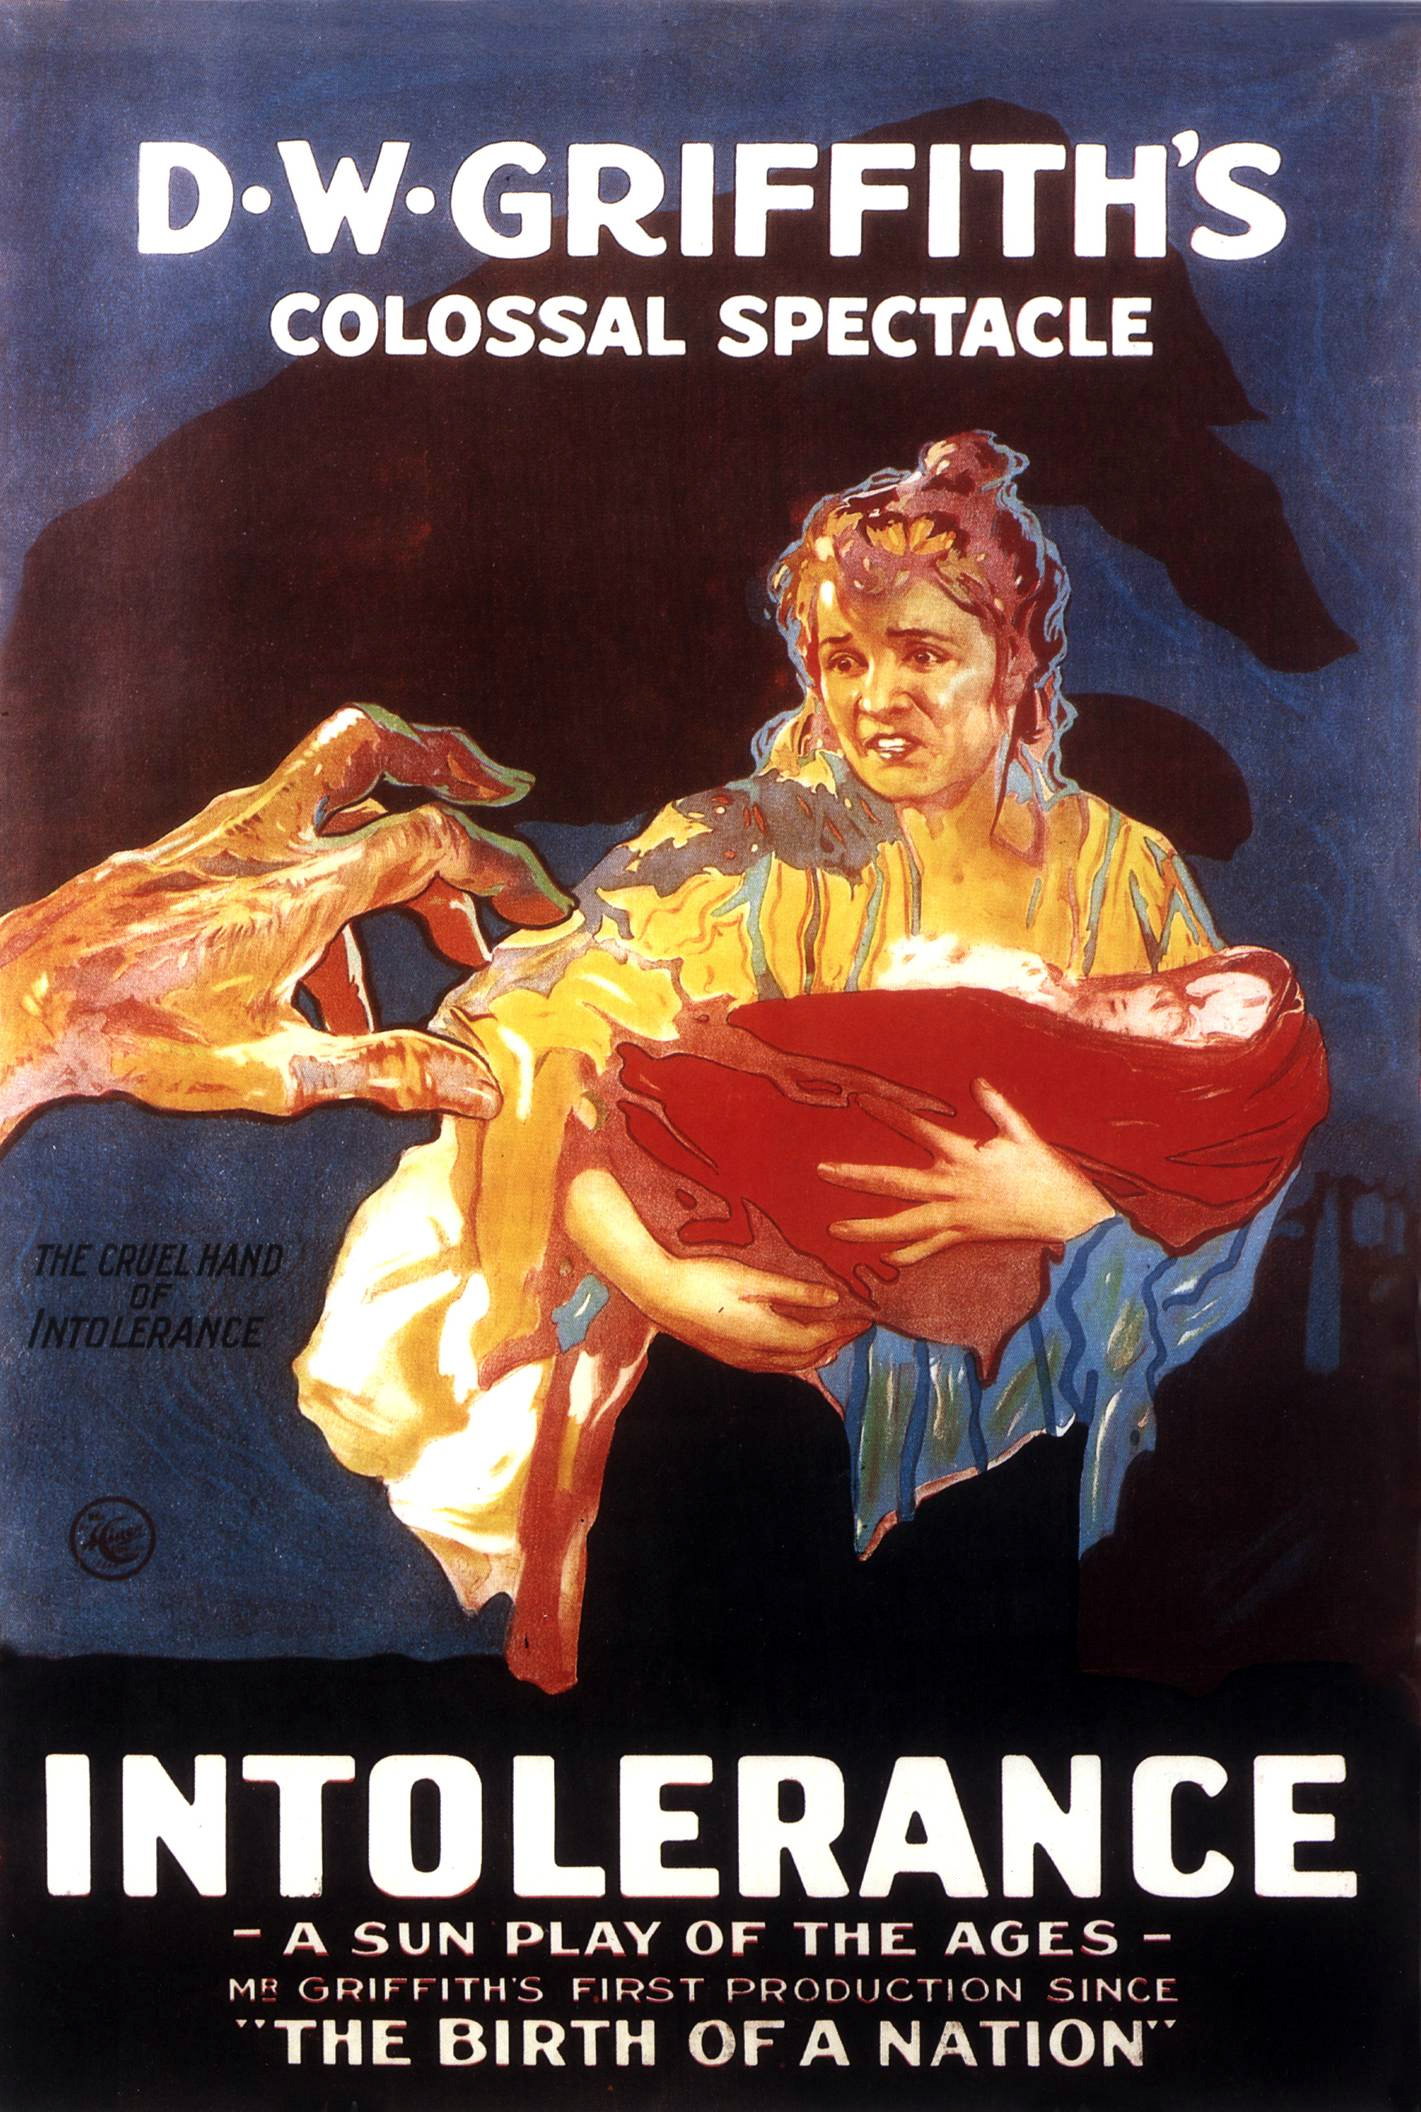 Poster for D.W. Griffith's film Intolerance